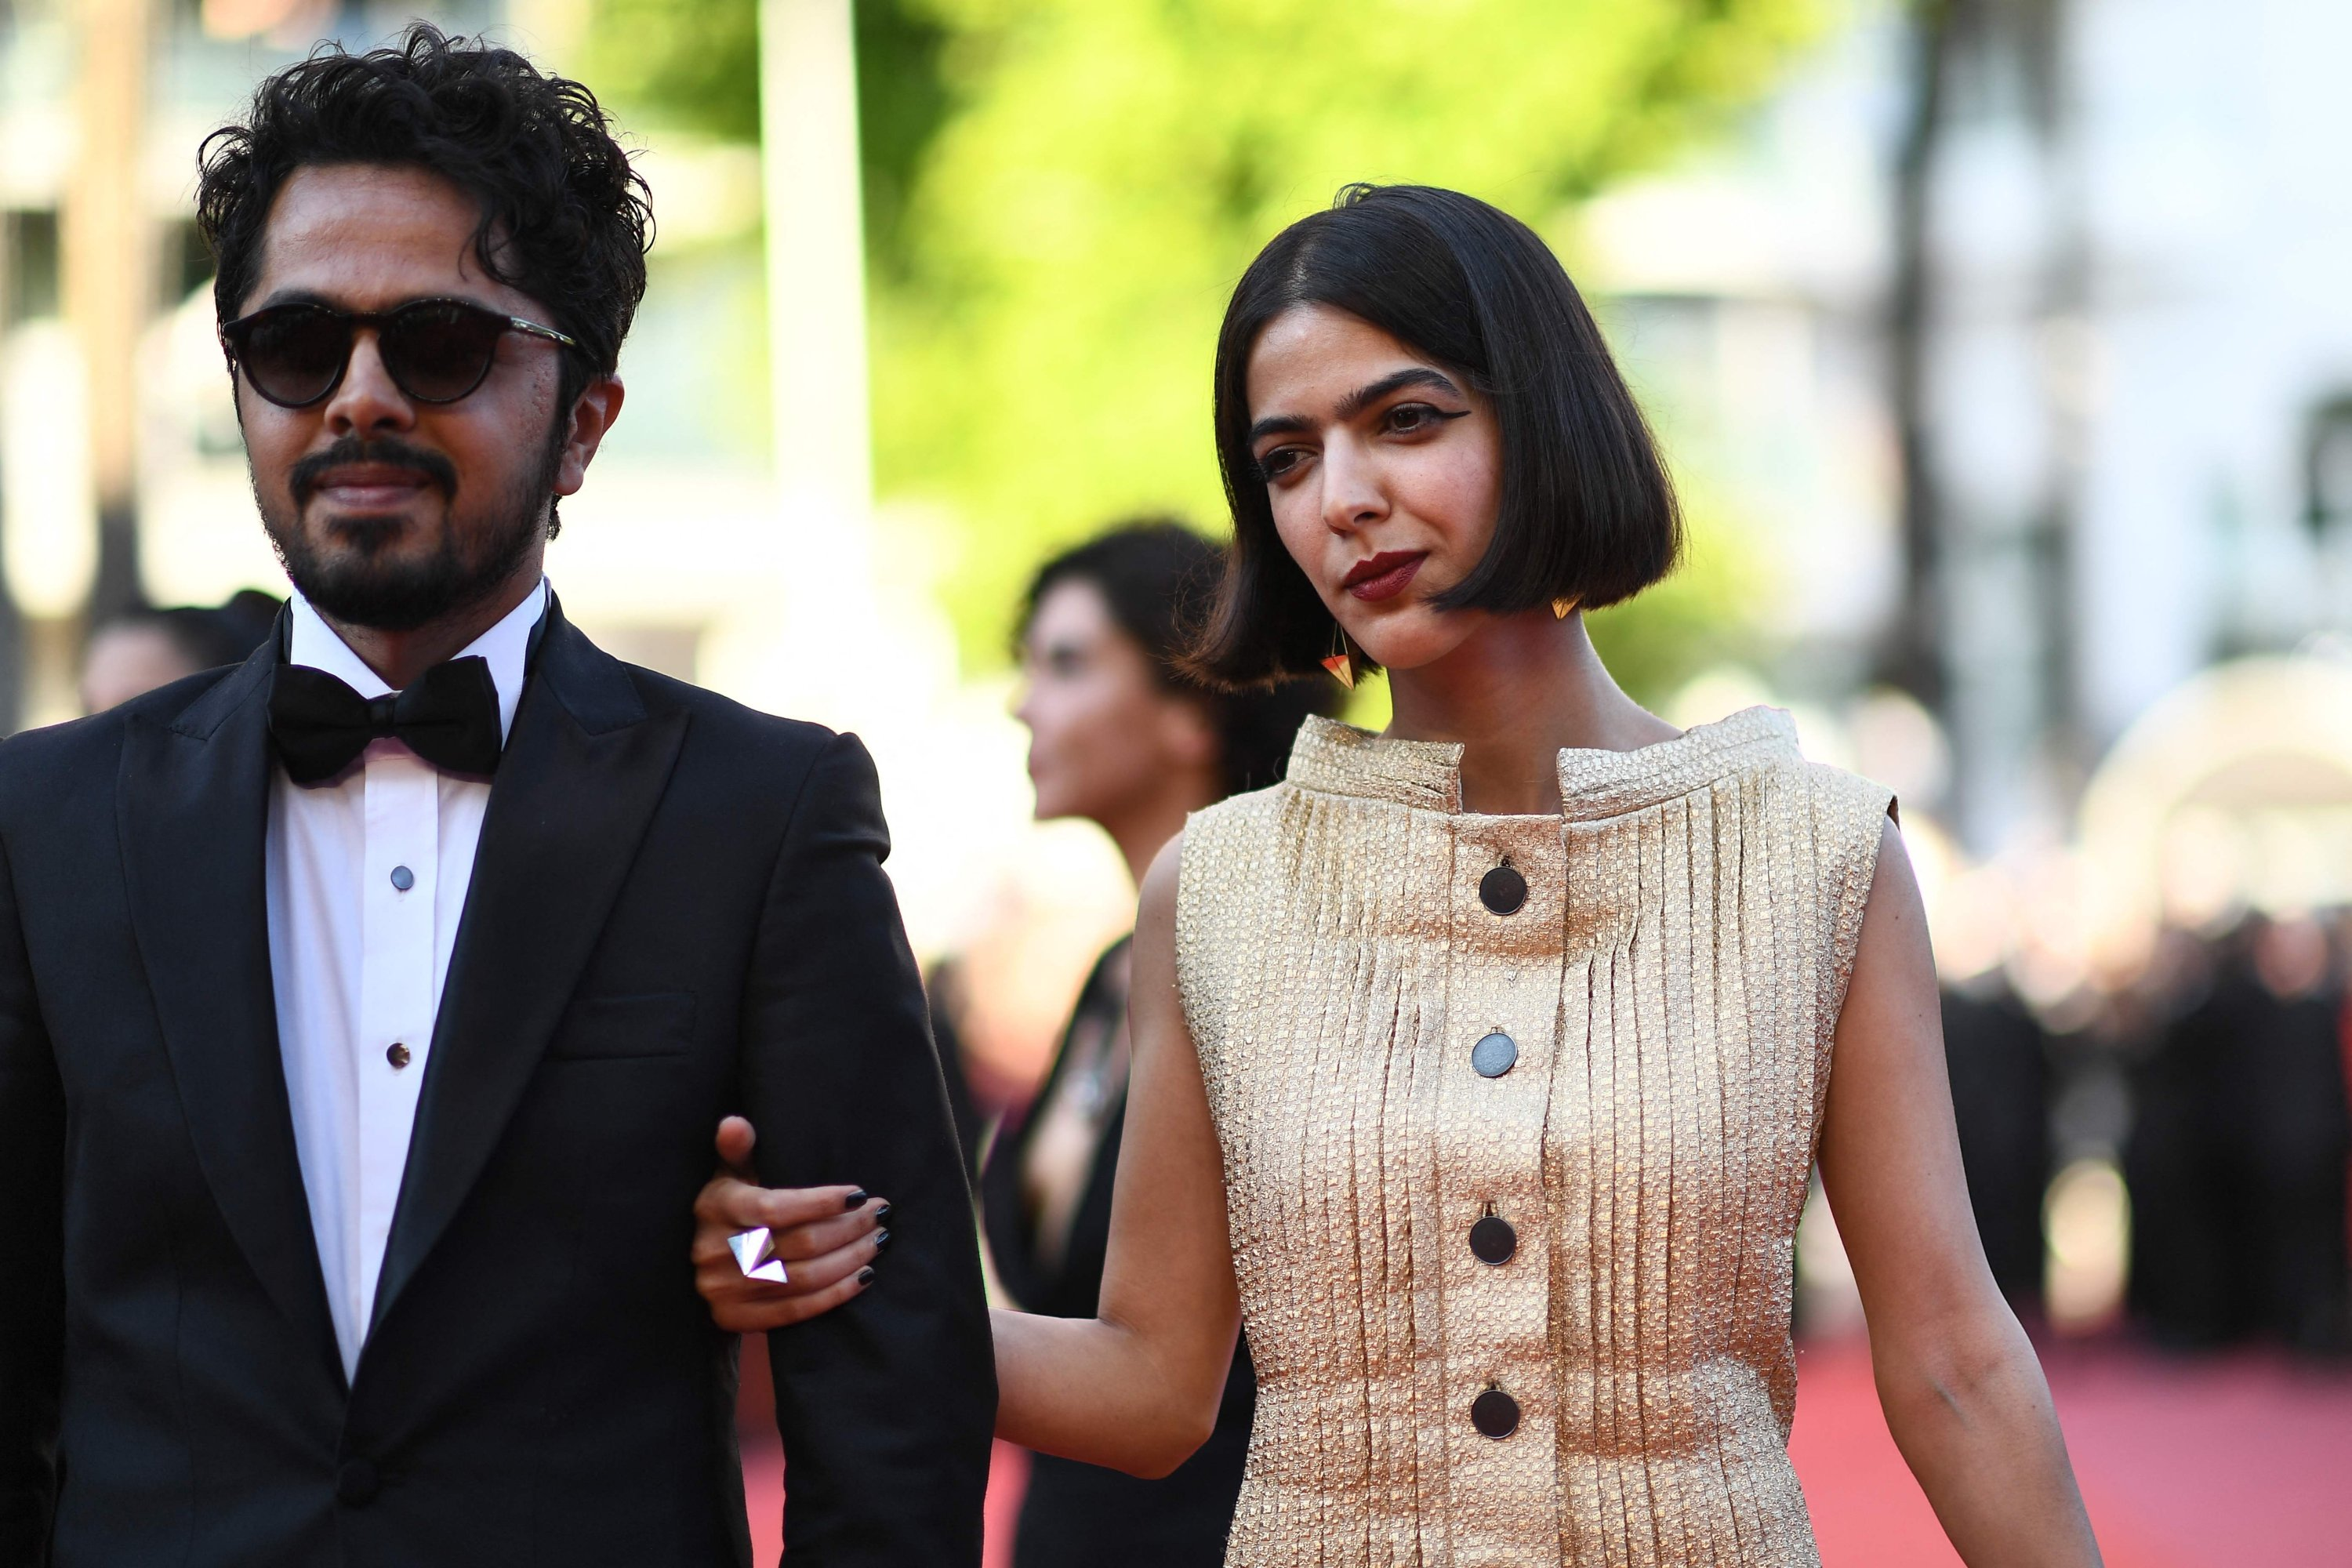 """Iranian actor Panah Panahi (L) and actress Solmaz Panahi, both children of film director Jafar Panahi, arrive for the screening of the film """"The Man Who Killed Don Quixote"""" at the 71st Cannes Film Festival in Cannes, France, May 19, 2018. (AFP Photo)"""